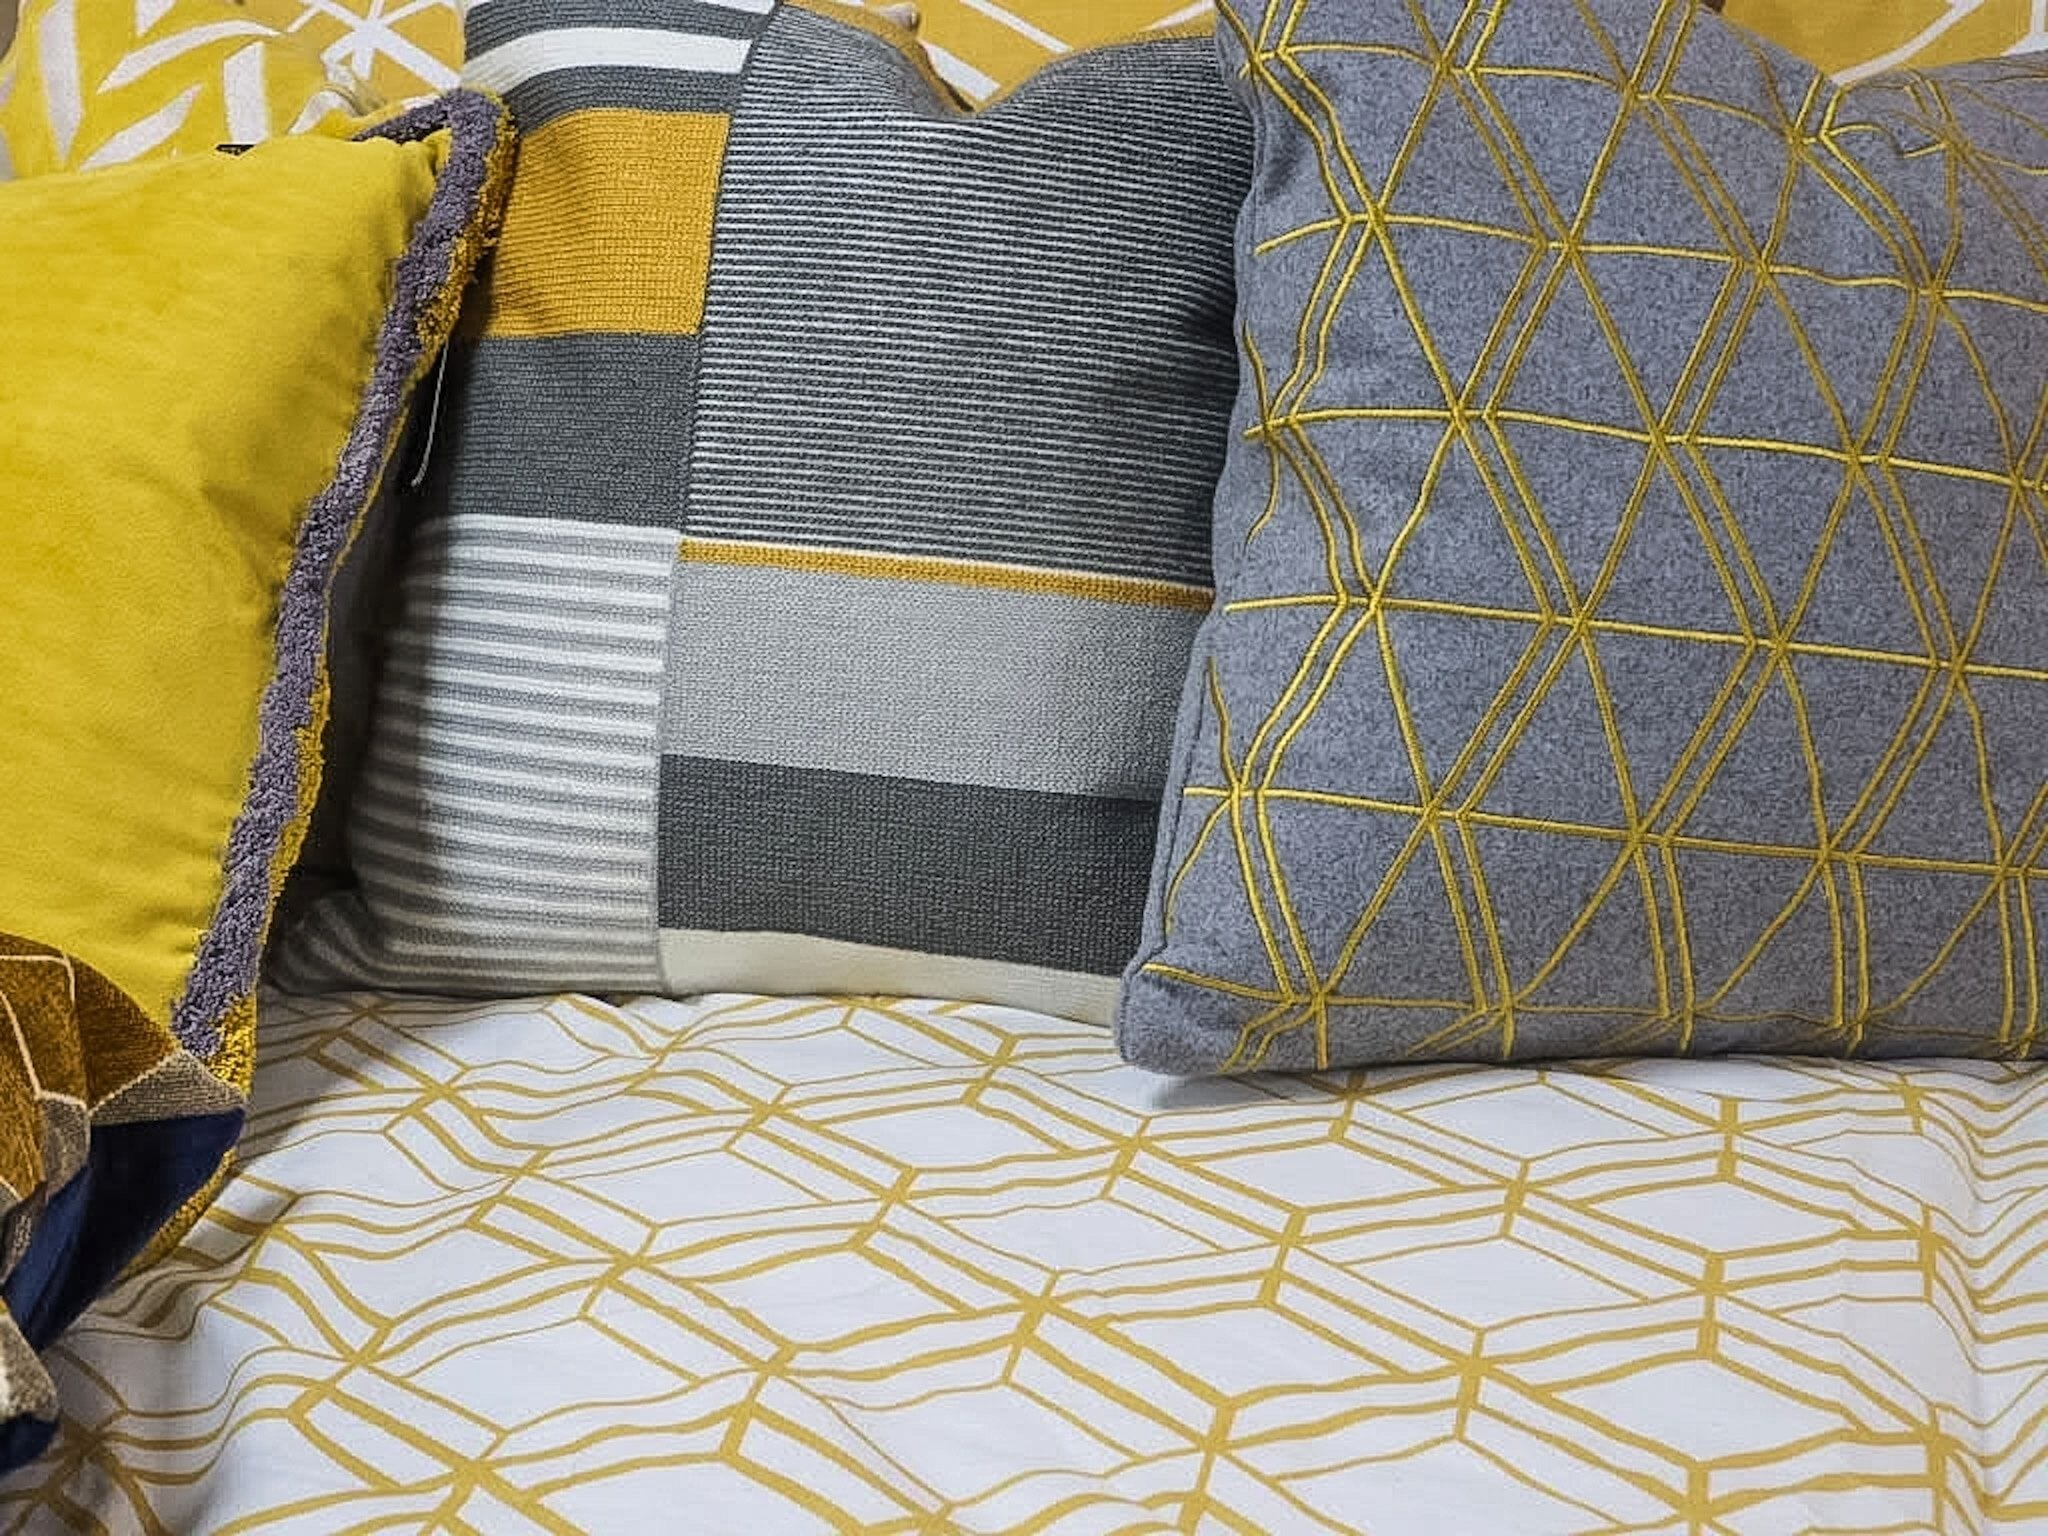 Ludwig Mustard Throw Pillow, Milana Yellow Throw Pillow, Linear Crewel Stitch Mustard Throw Pillow, and Catherine Lansfield Double Duvet Set